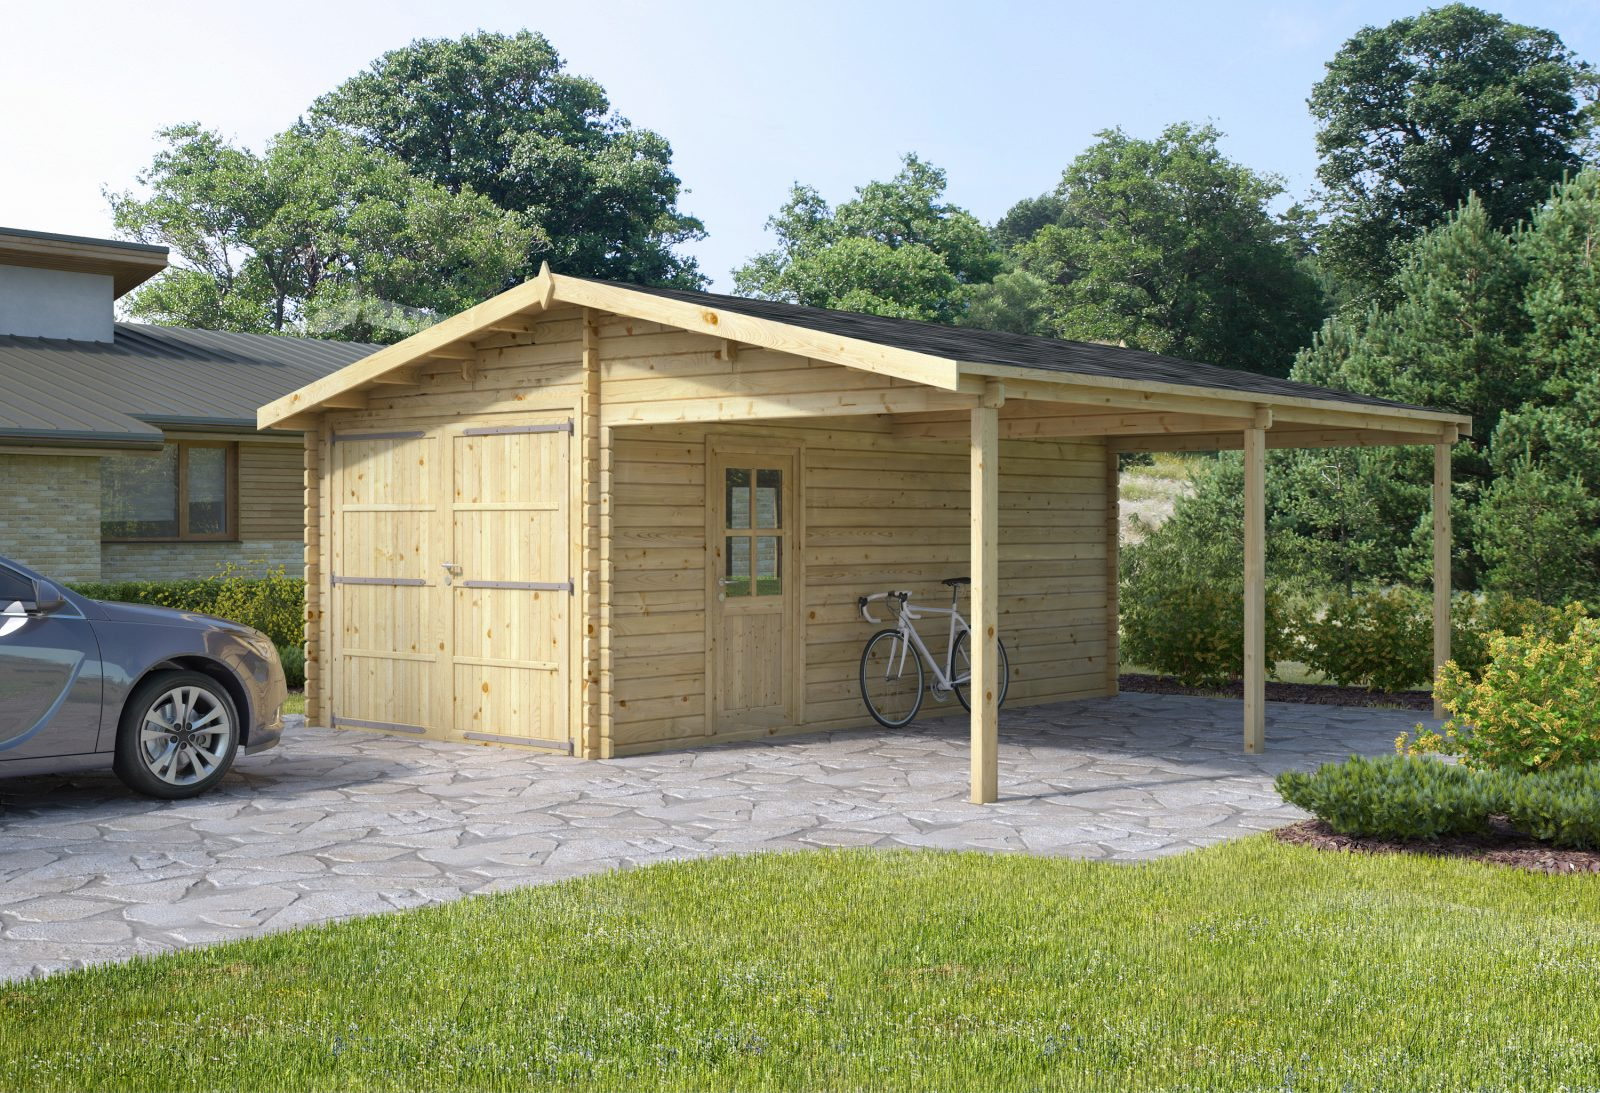 Garage Carport 6 X 6 M 4 246 00 ₤ Log Cabins Sheds